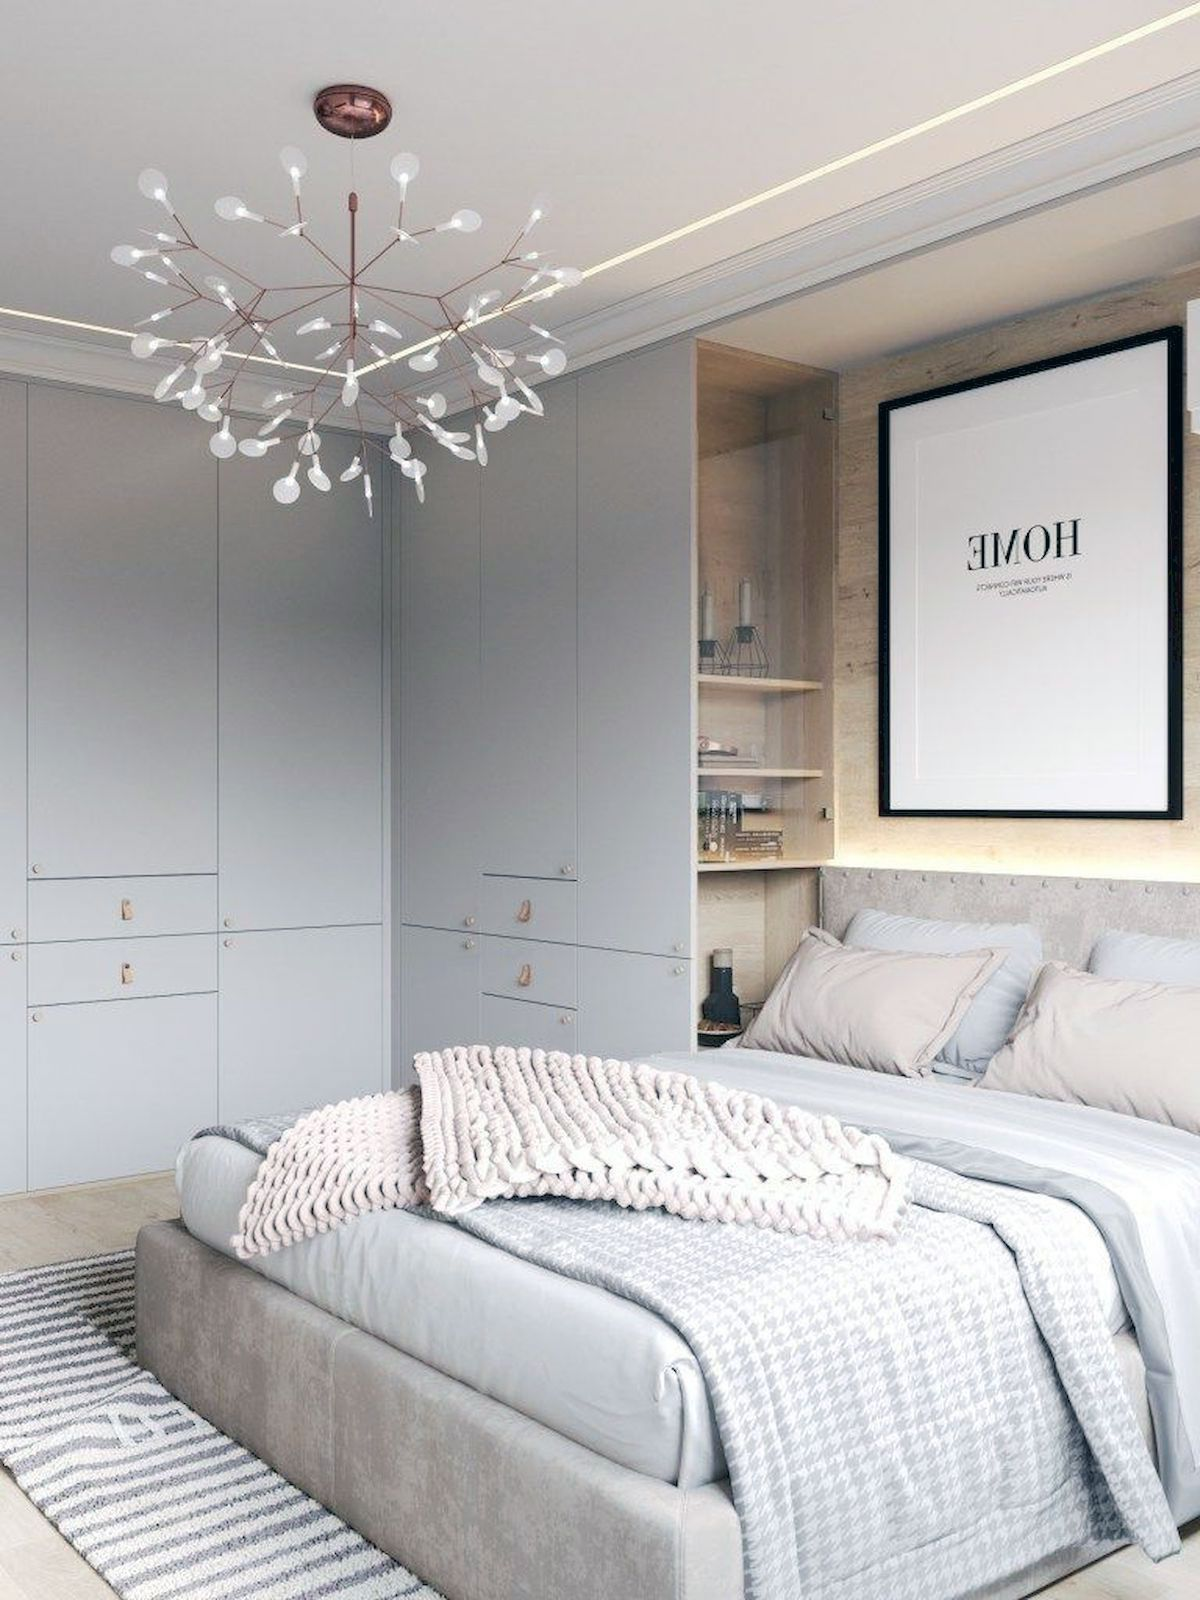 Scandinavian Interior Bedroom Wardrobe Ideas (8) - Outoflineartstudio